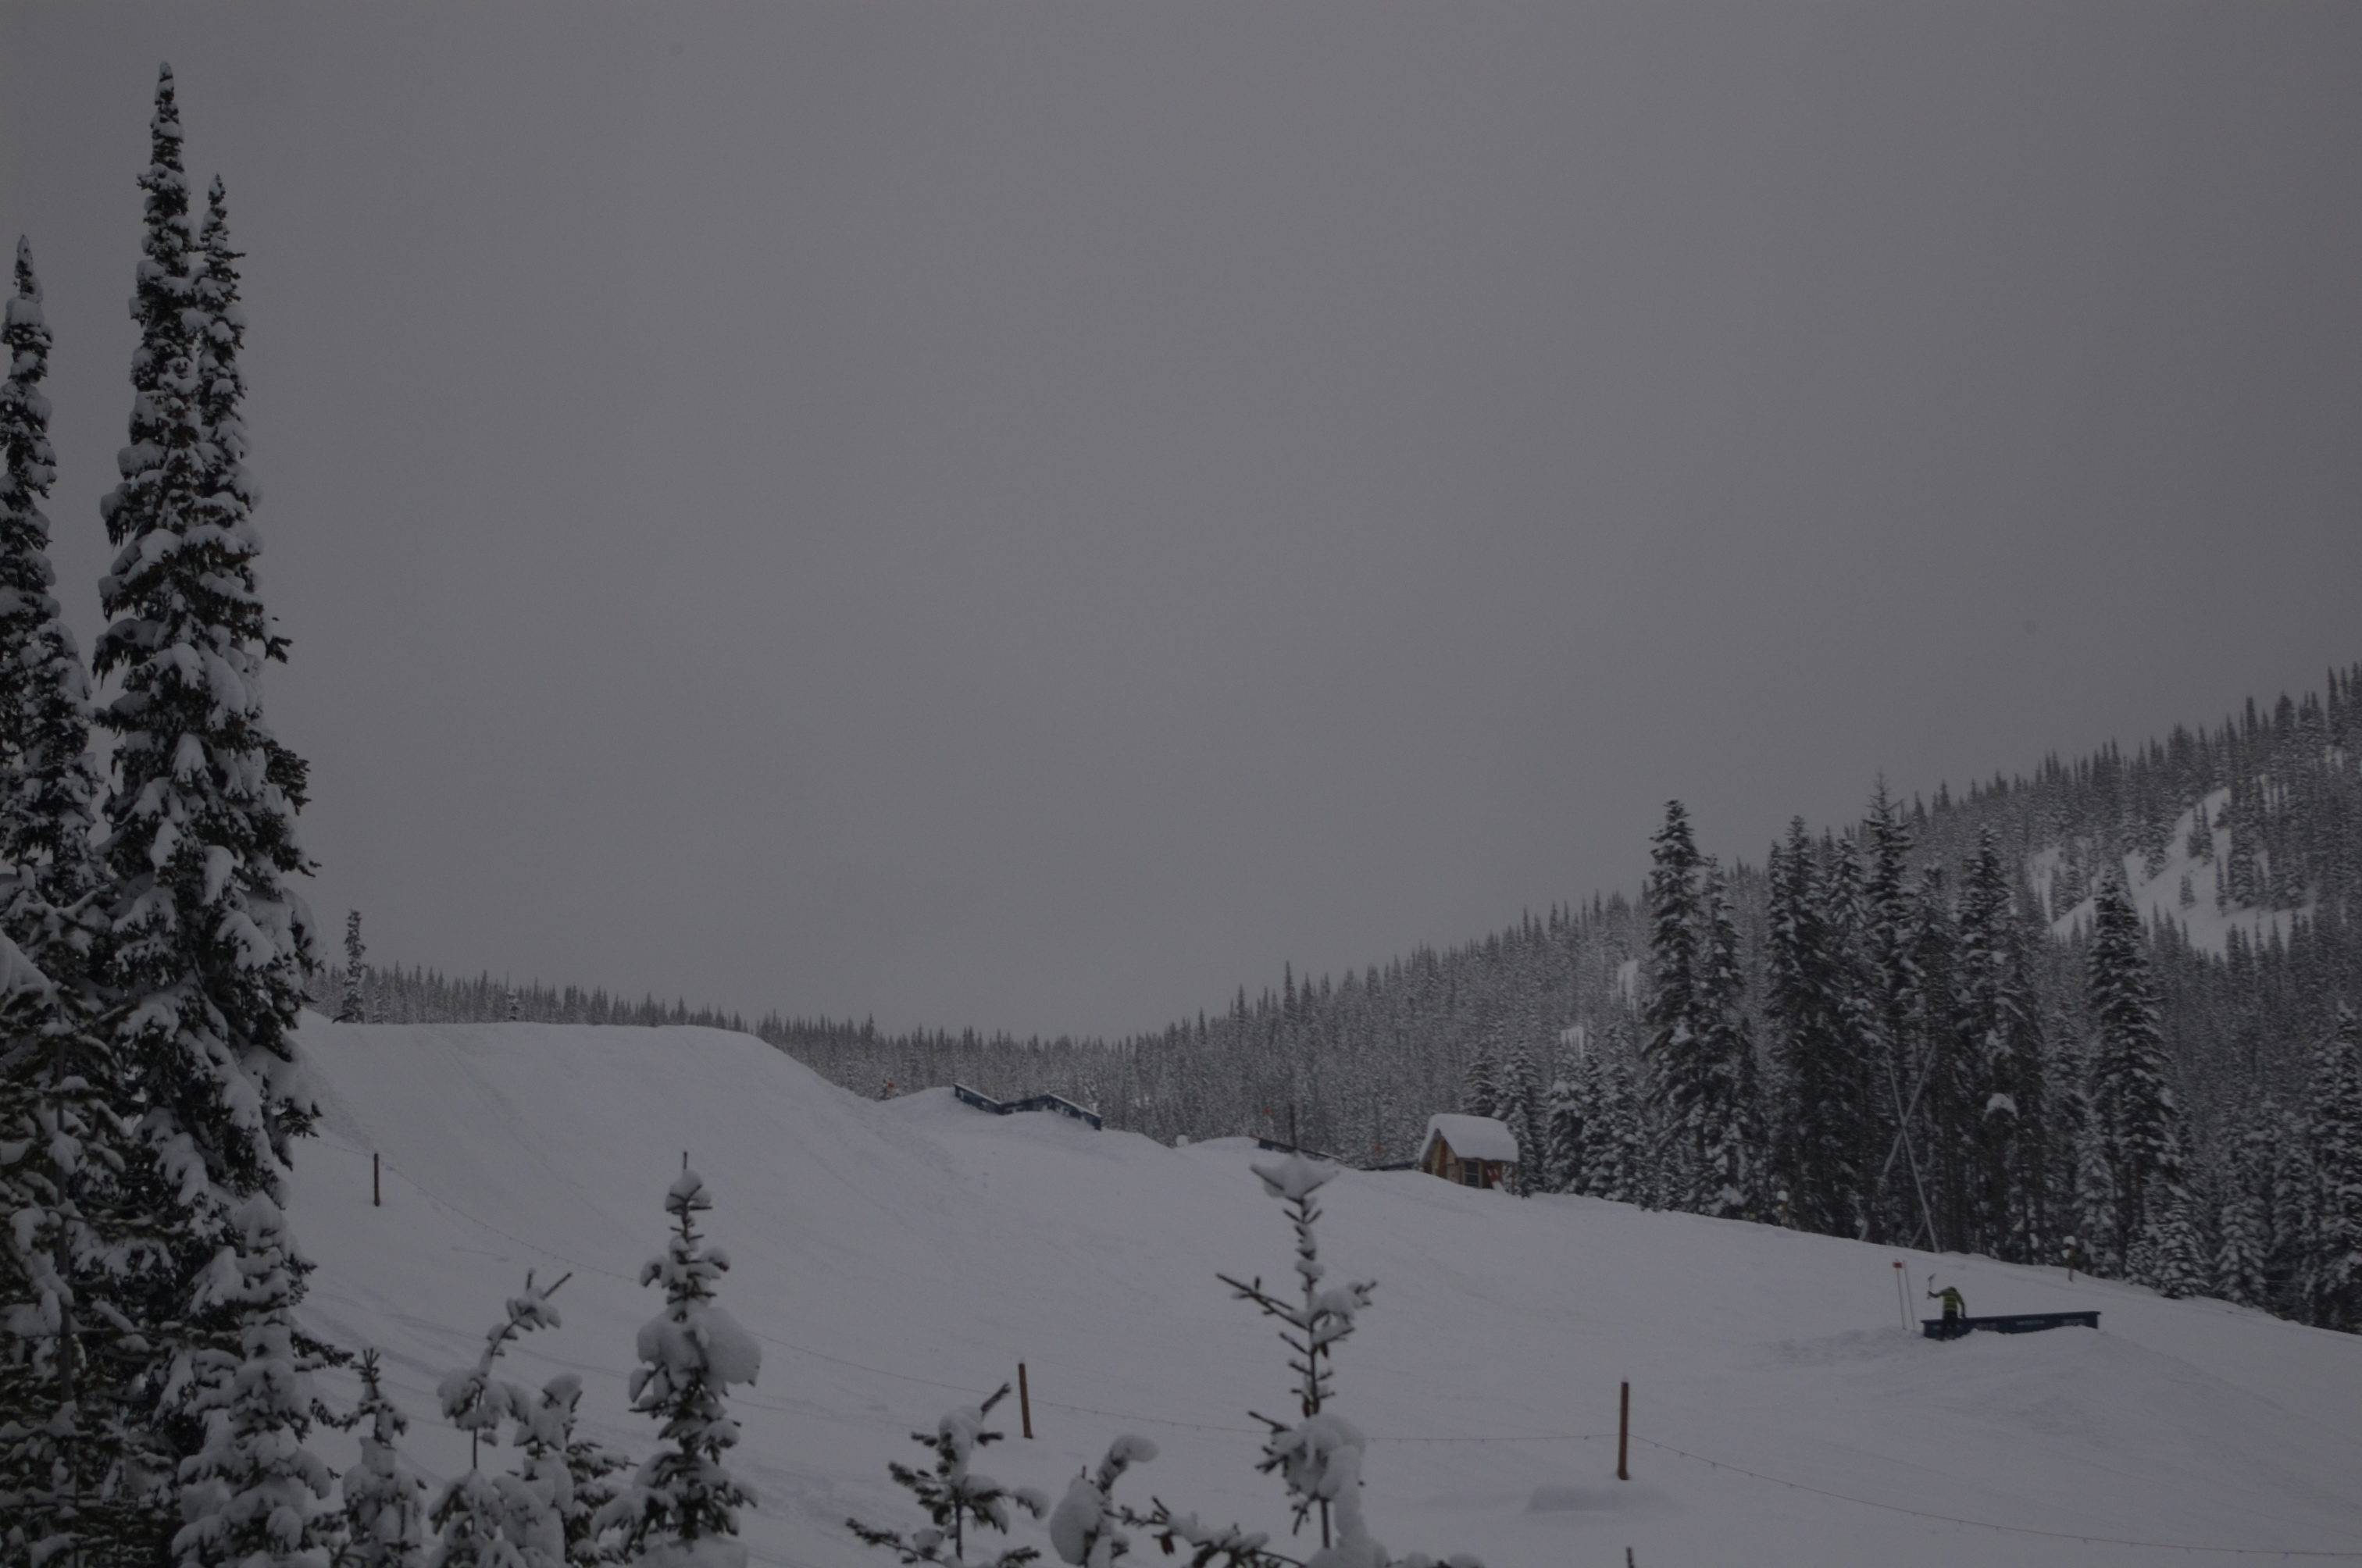 New features at Manning Park